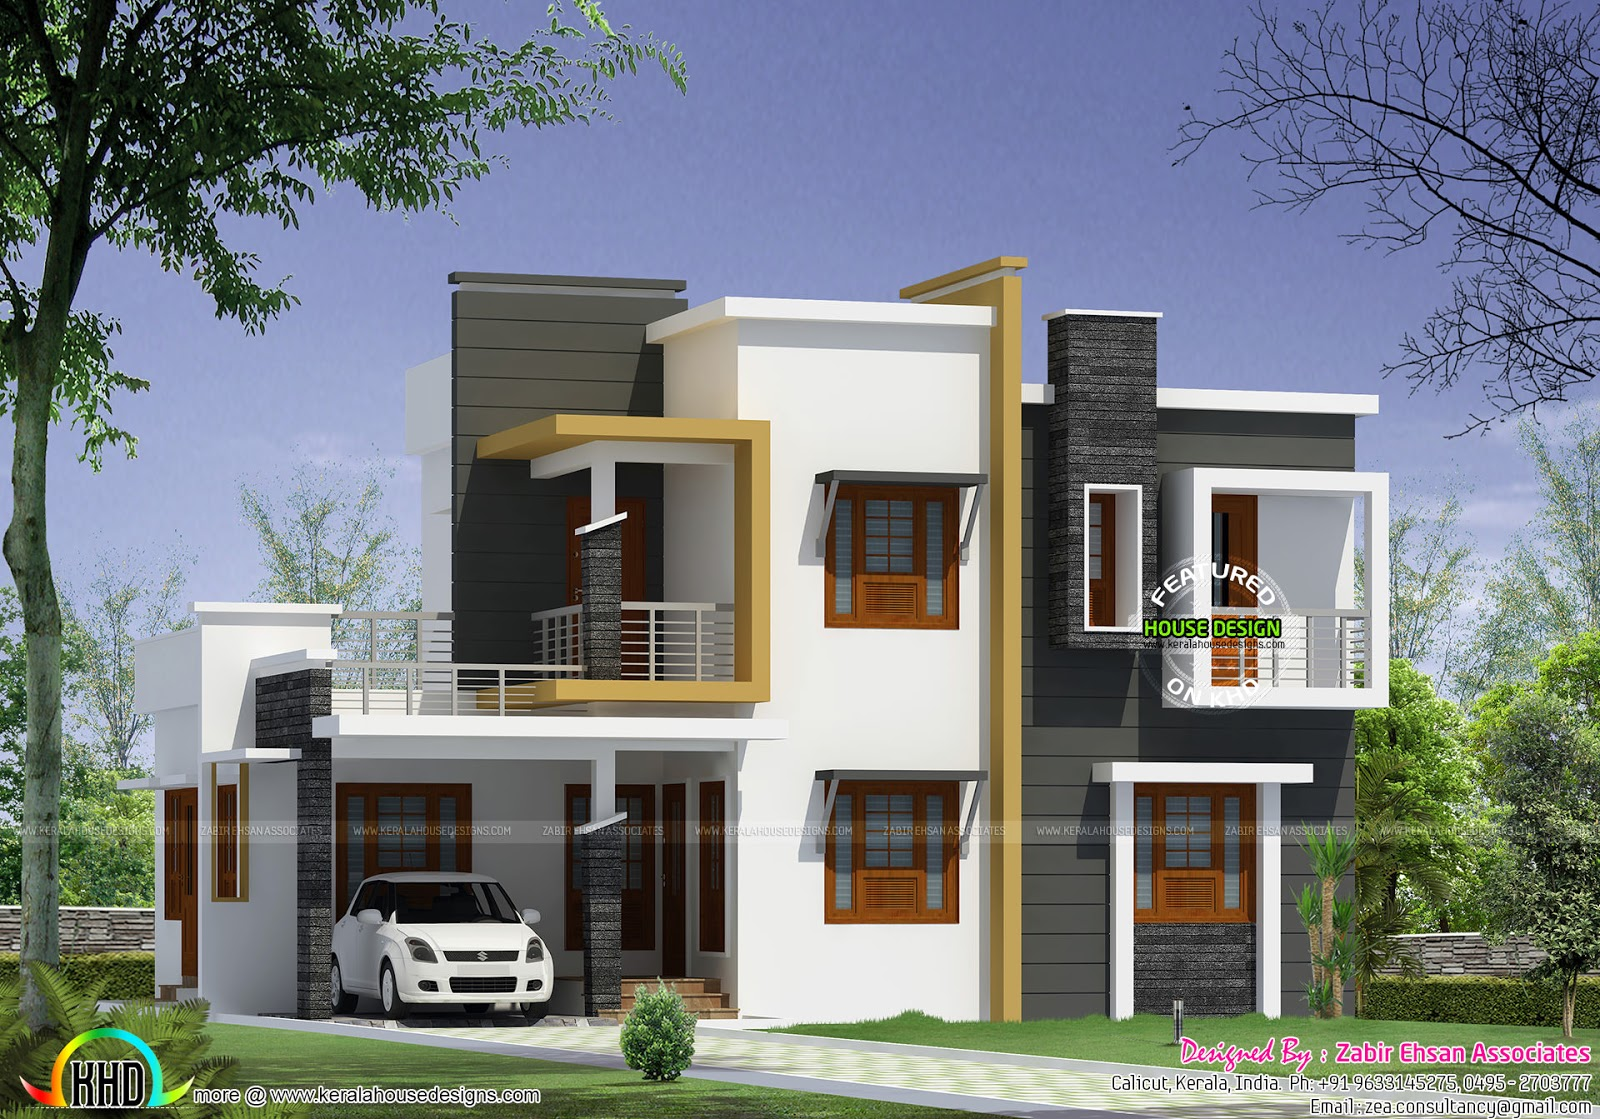 Box type modern house plan kerala home design and floor for Contemporary modern style house plans